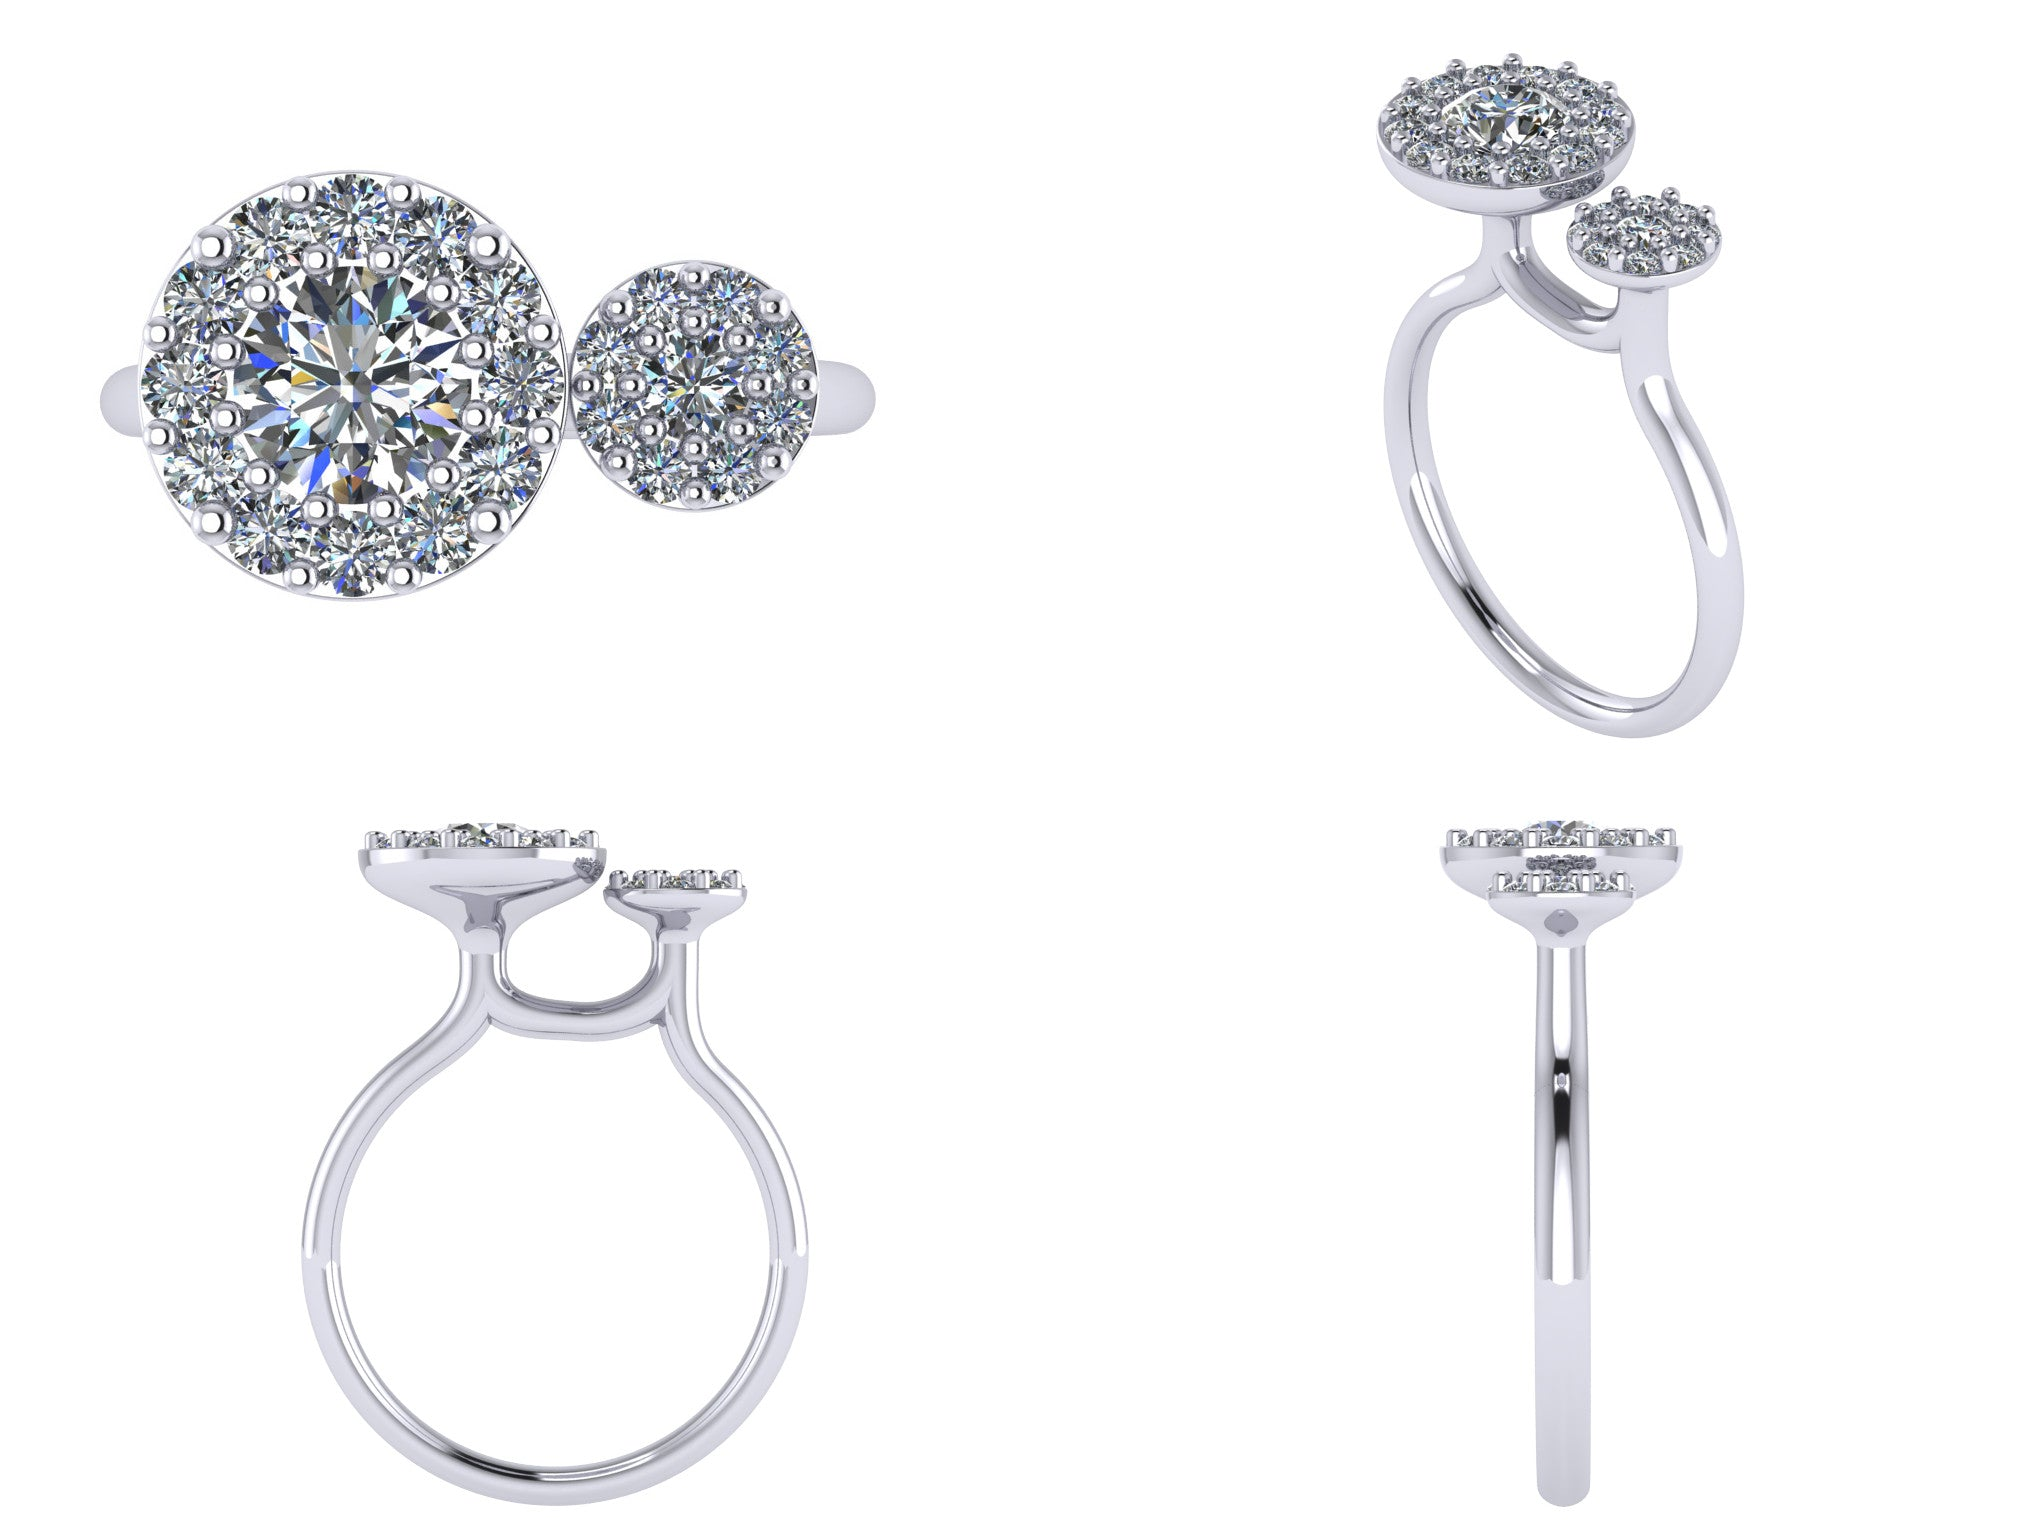 Cad-drawings-for-diamond-engagement-ring